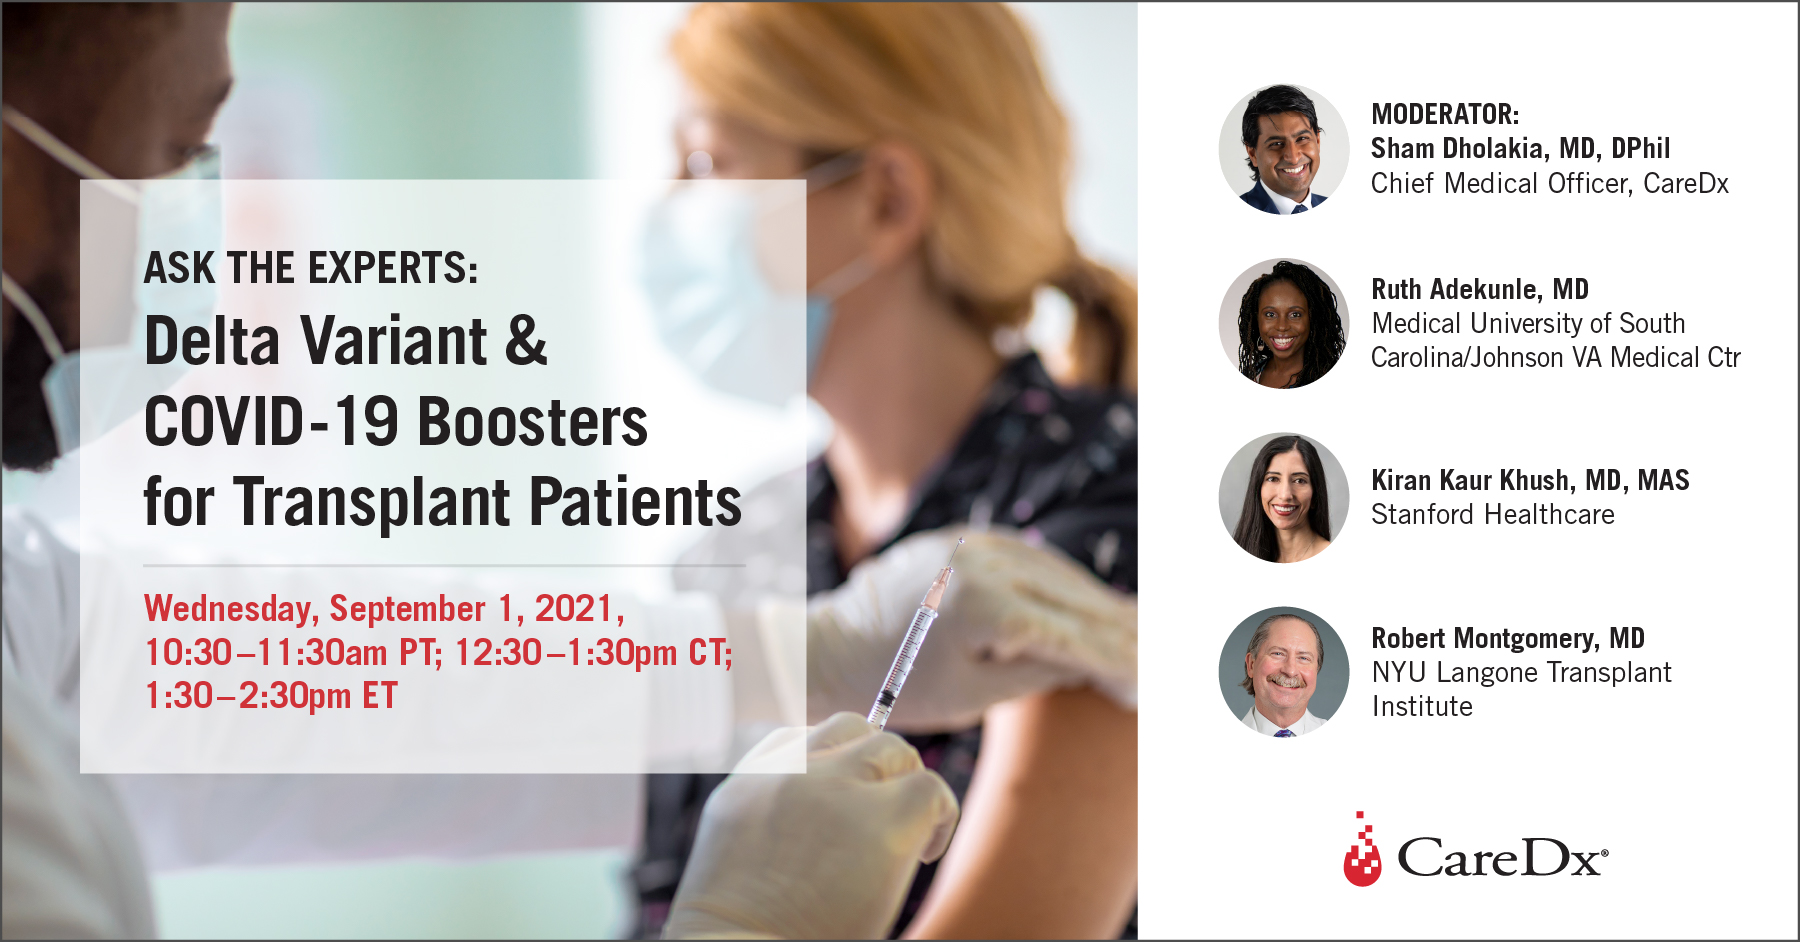 Ask the Experts: Delta Variant & COVID-19 Boosters for Transplant Patients